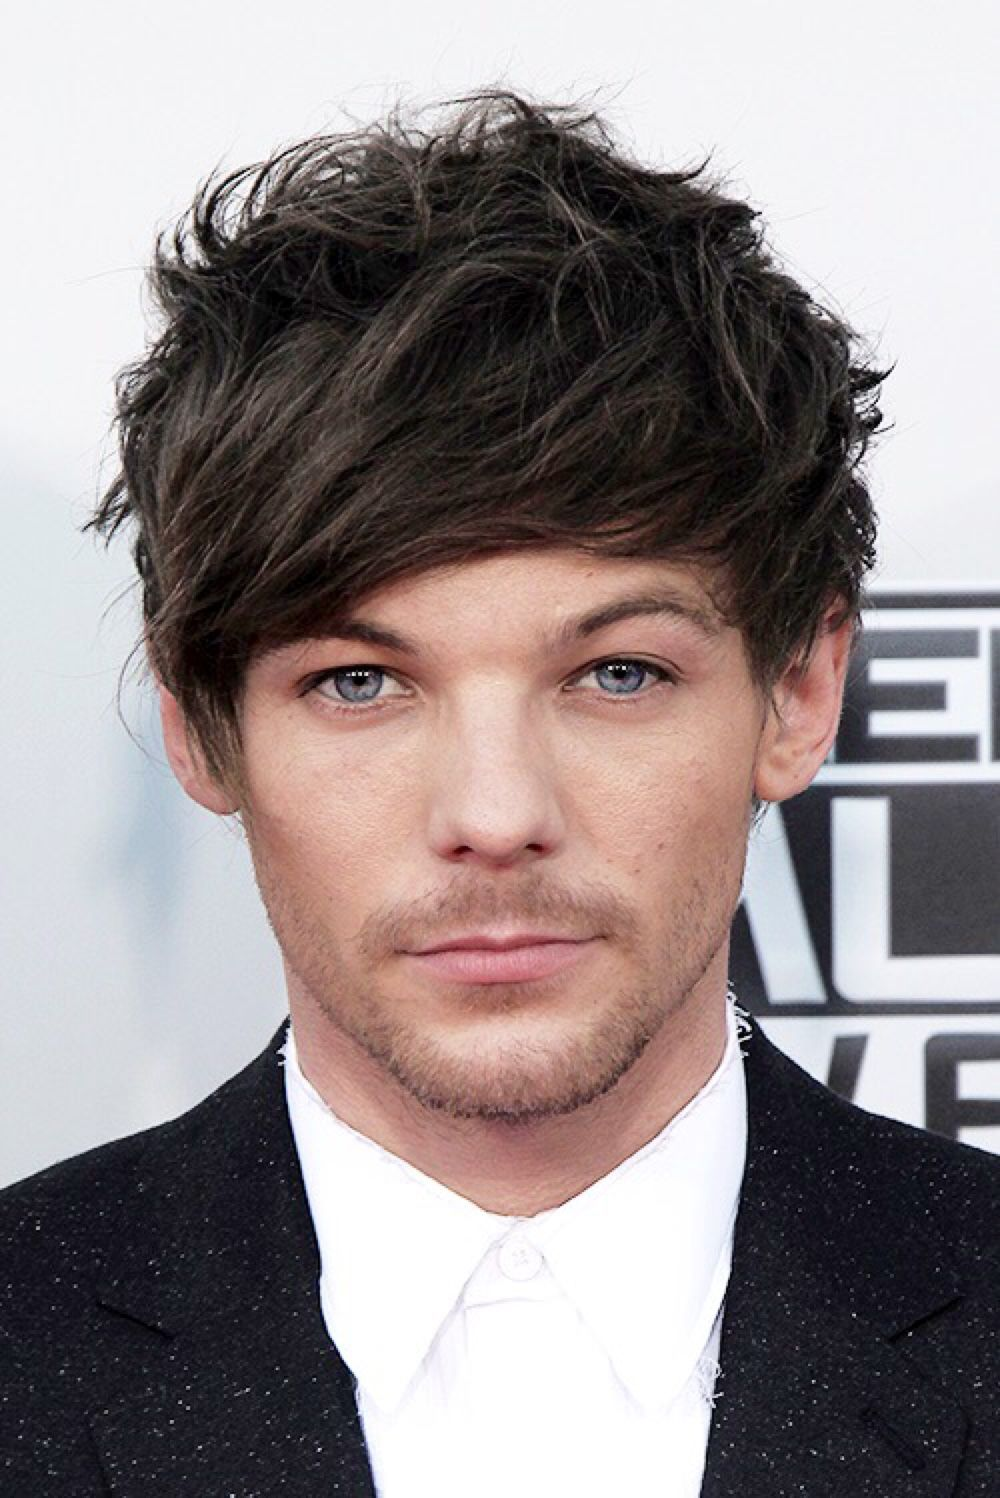 Louis Tomlinson On The 2015 American Music Awards Red